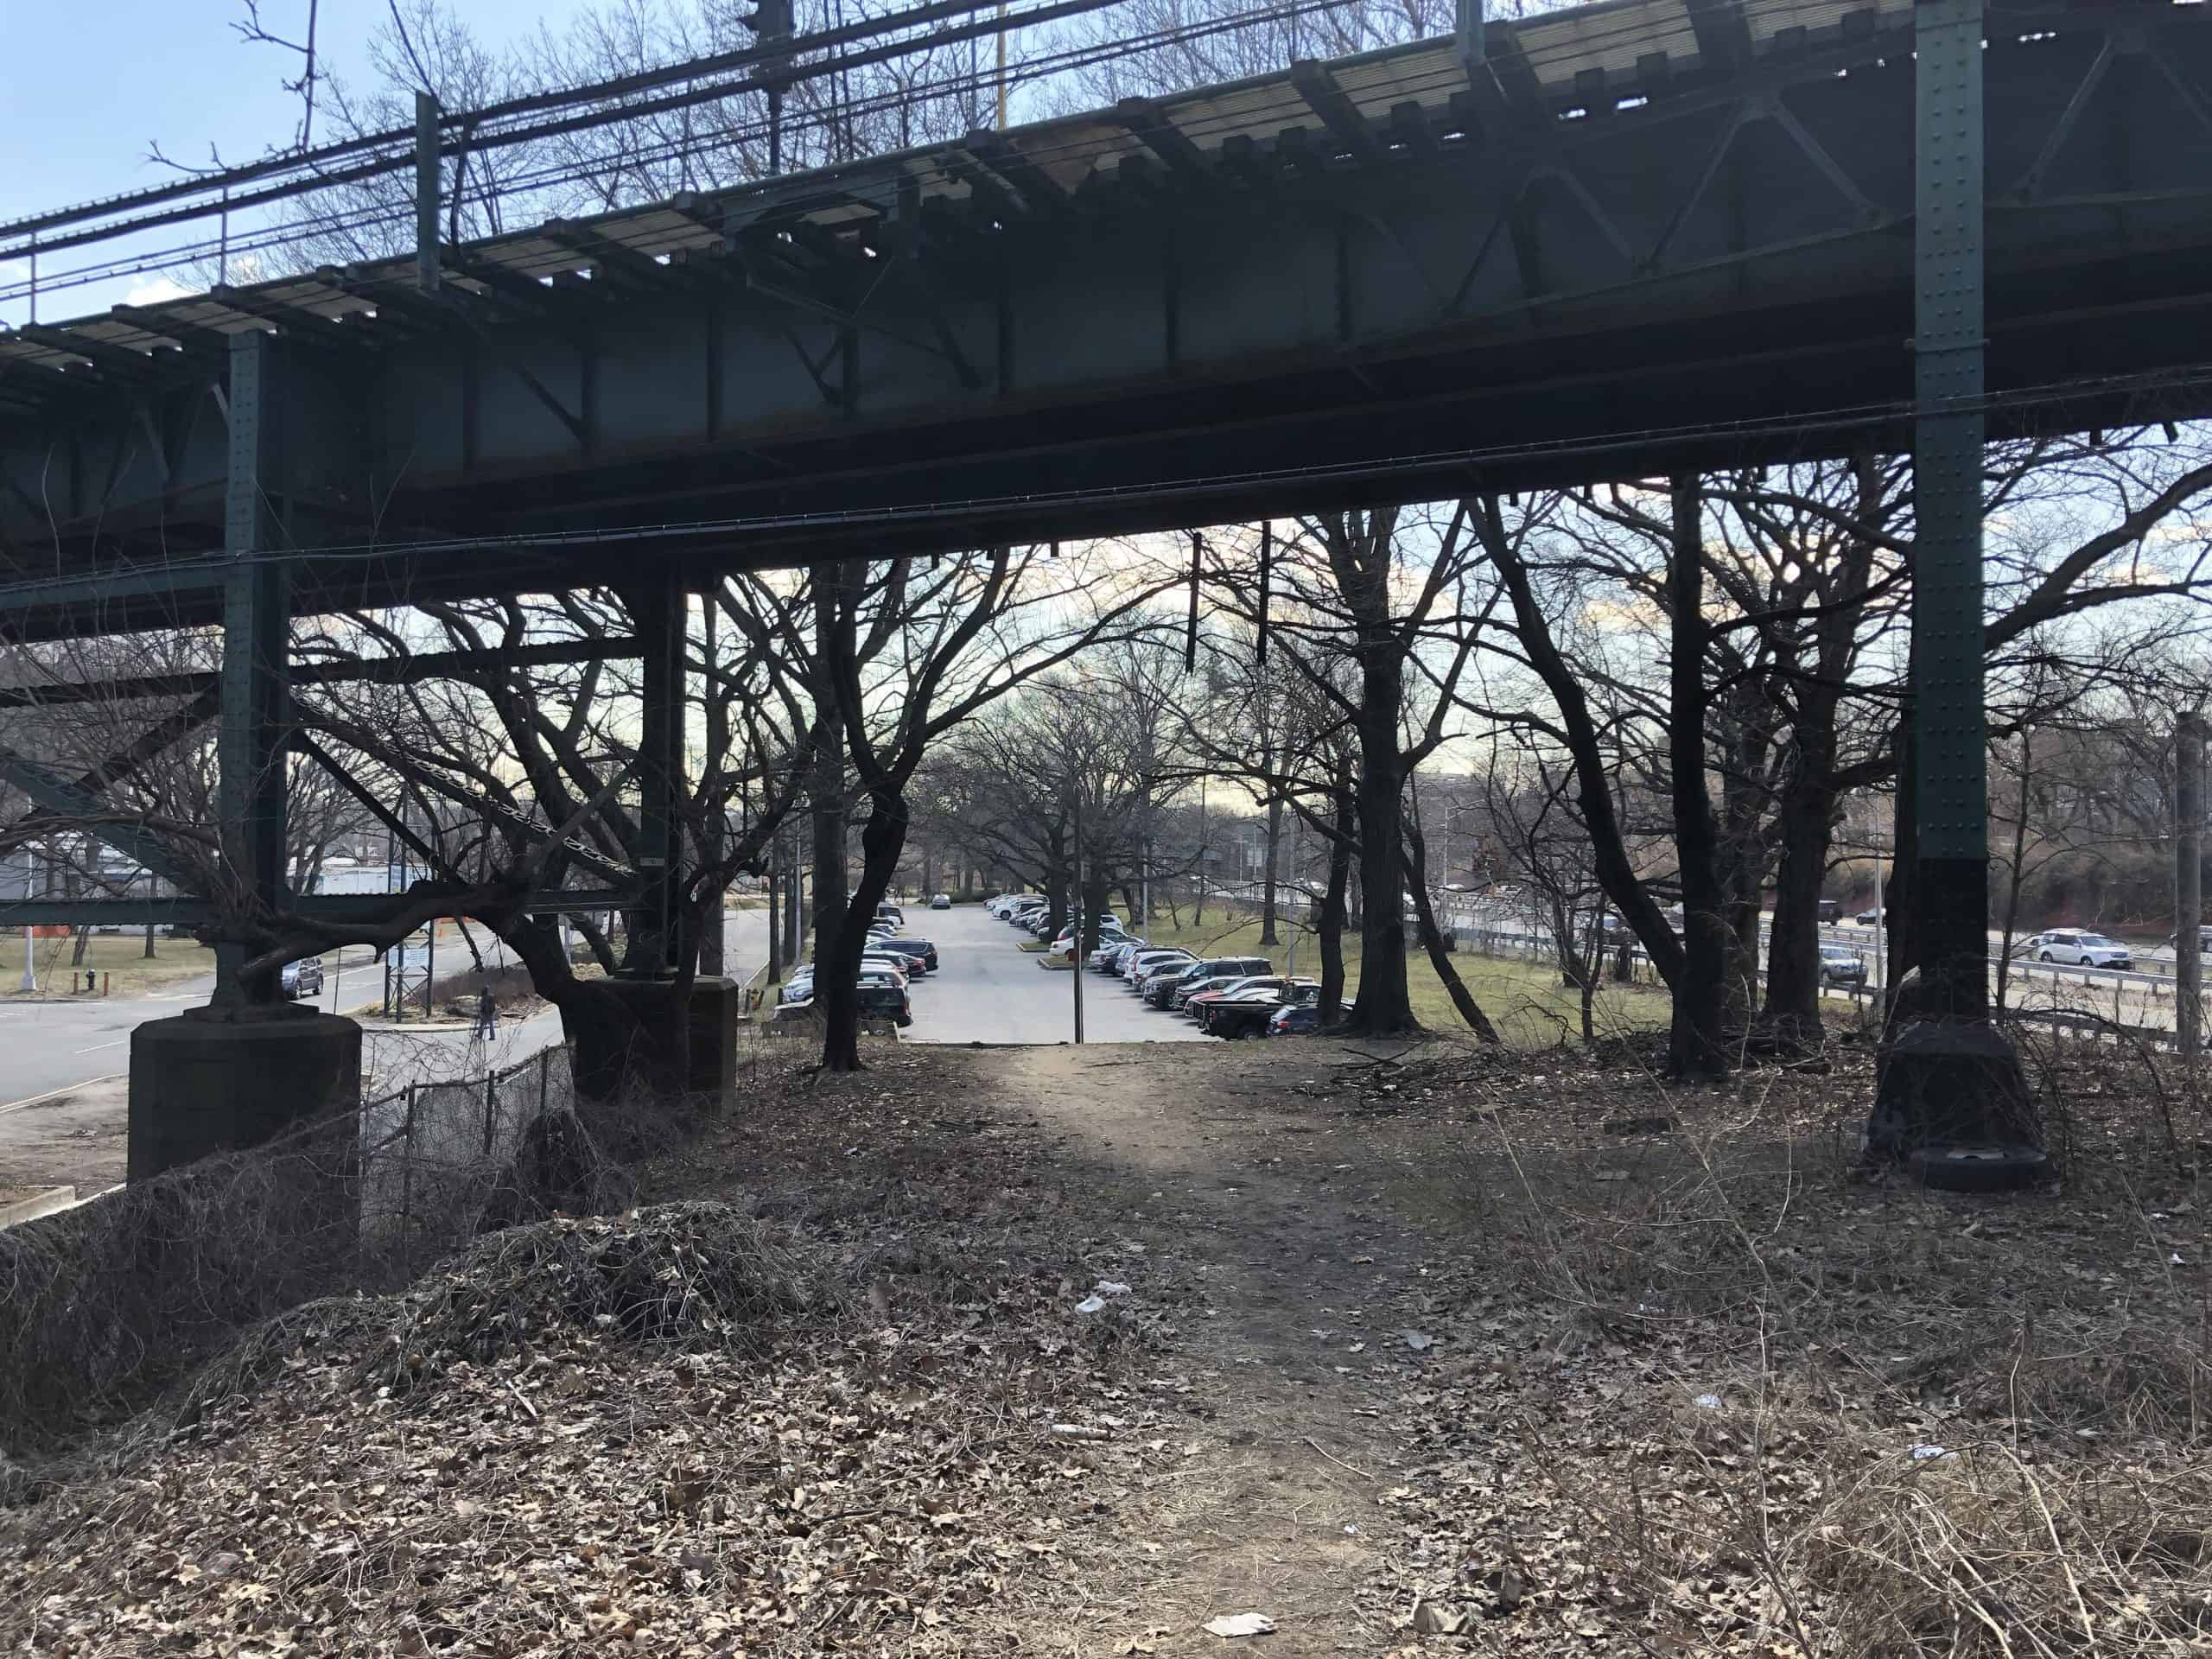 train overpass over a road and forest pedestrian trail